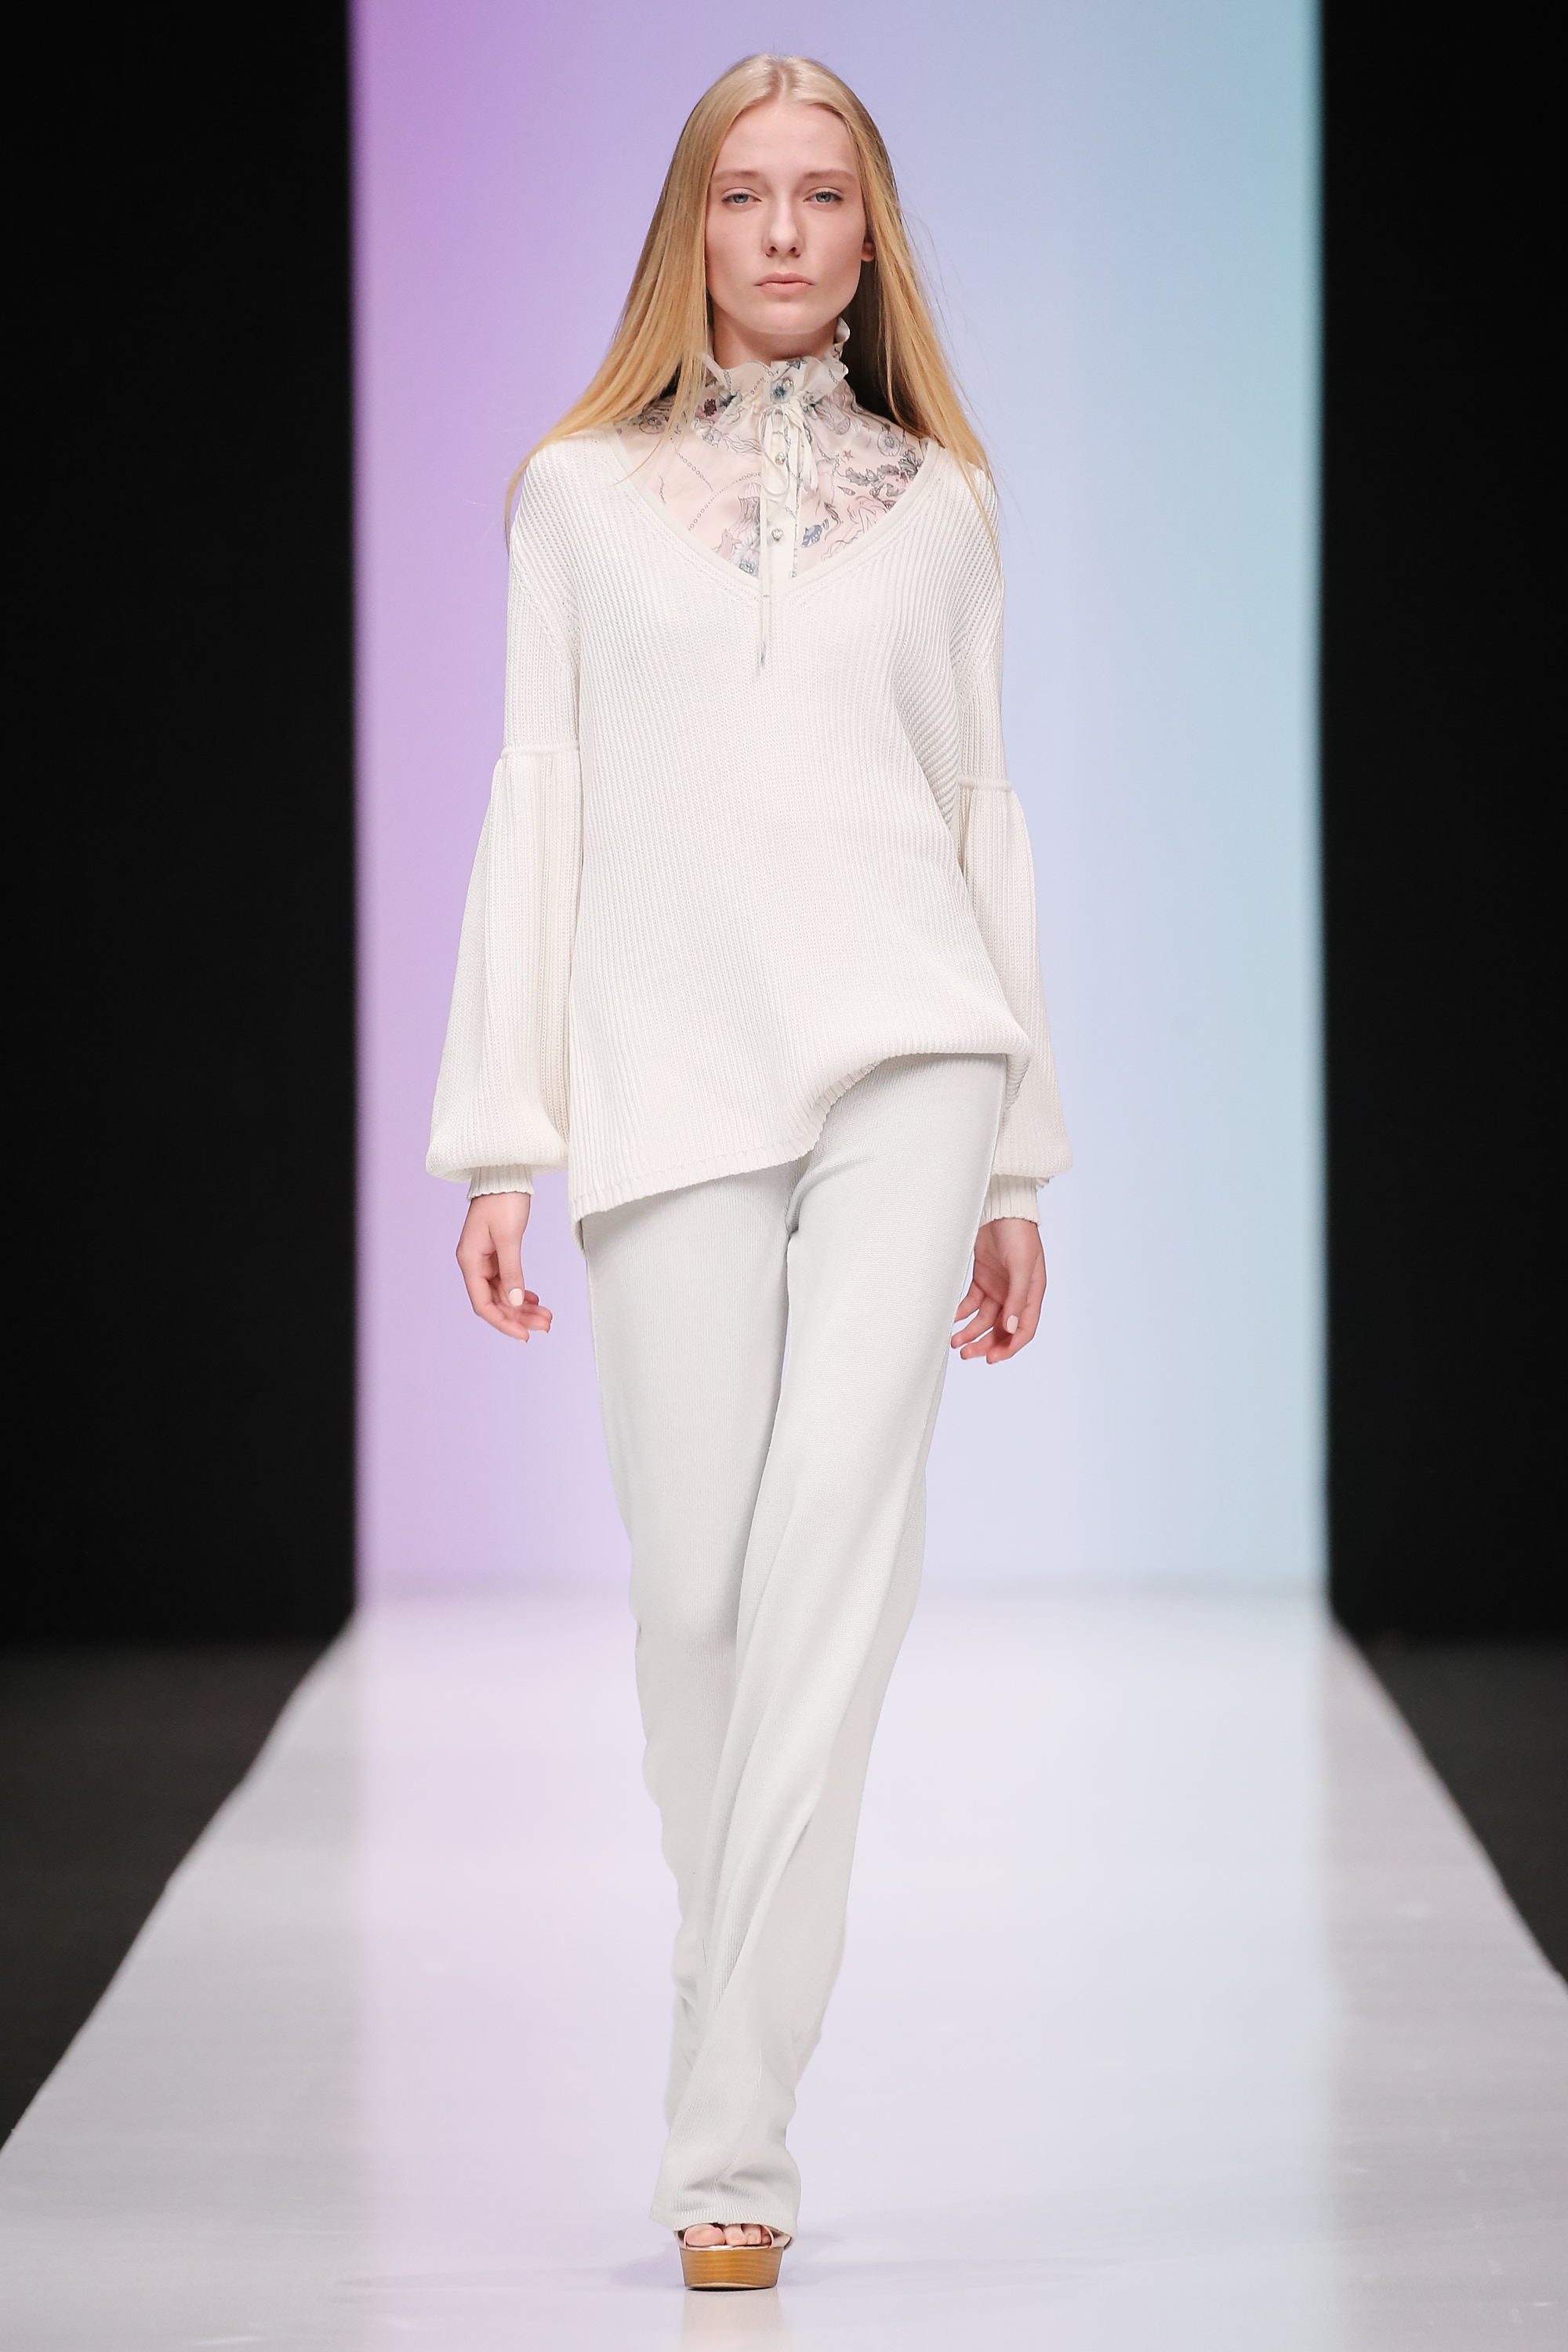 33rd Season of Mercedes-Benz Fashion Week Russia Day 2